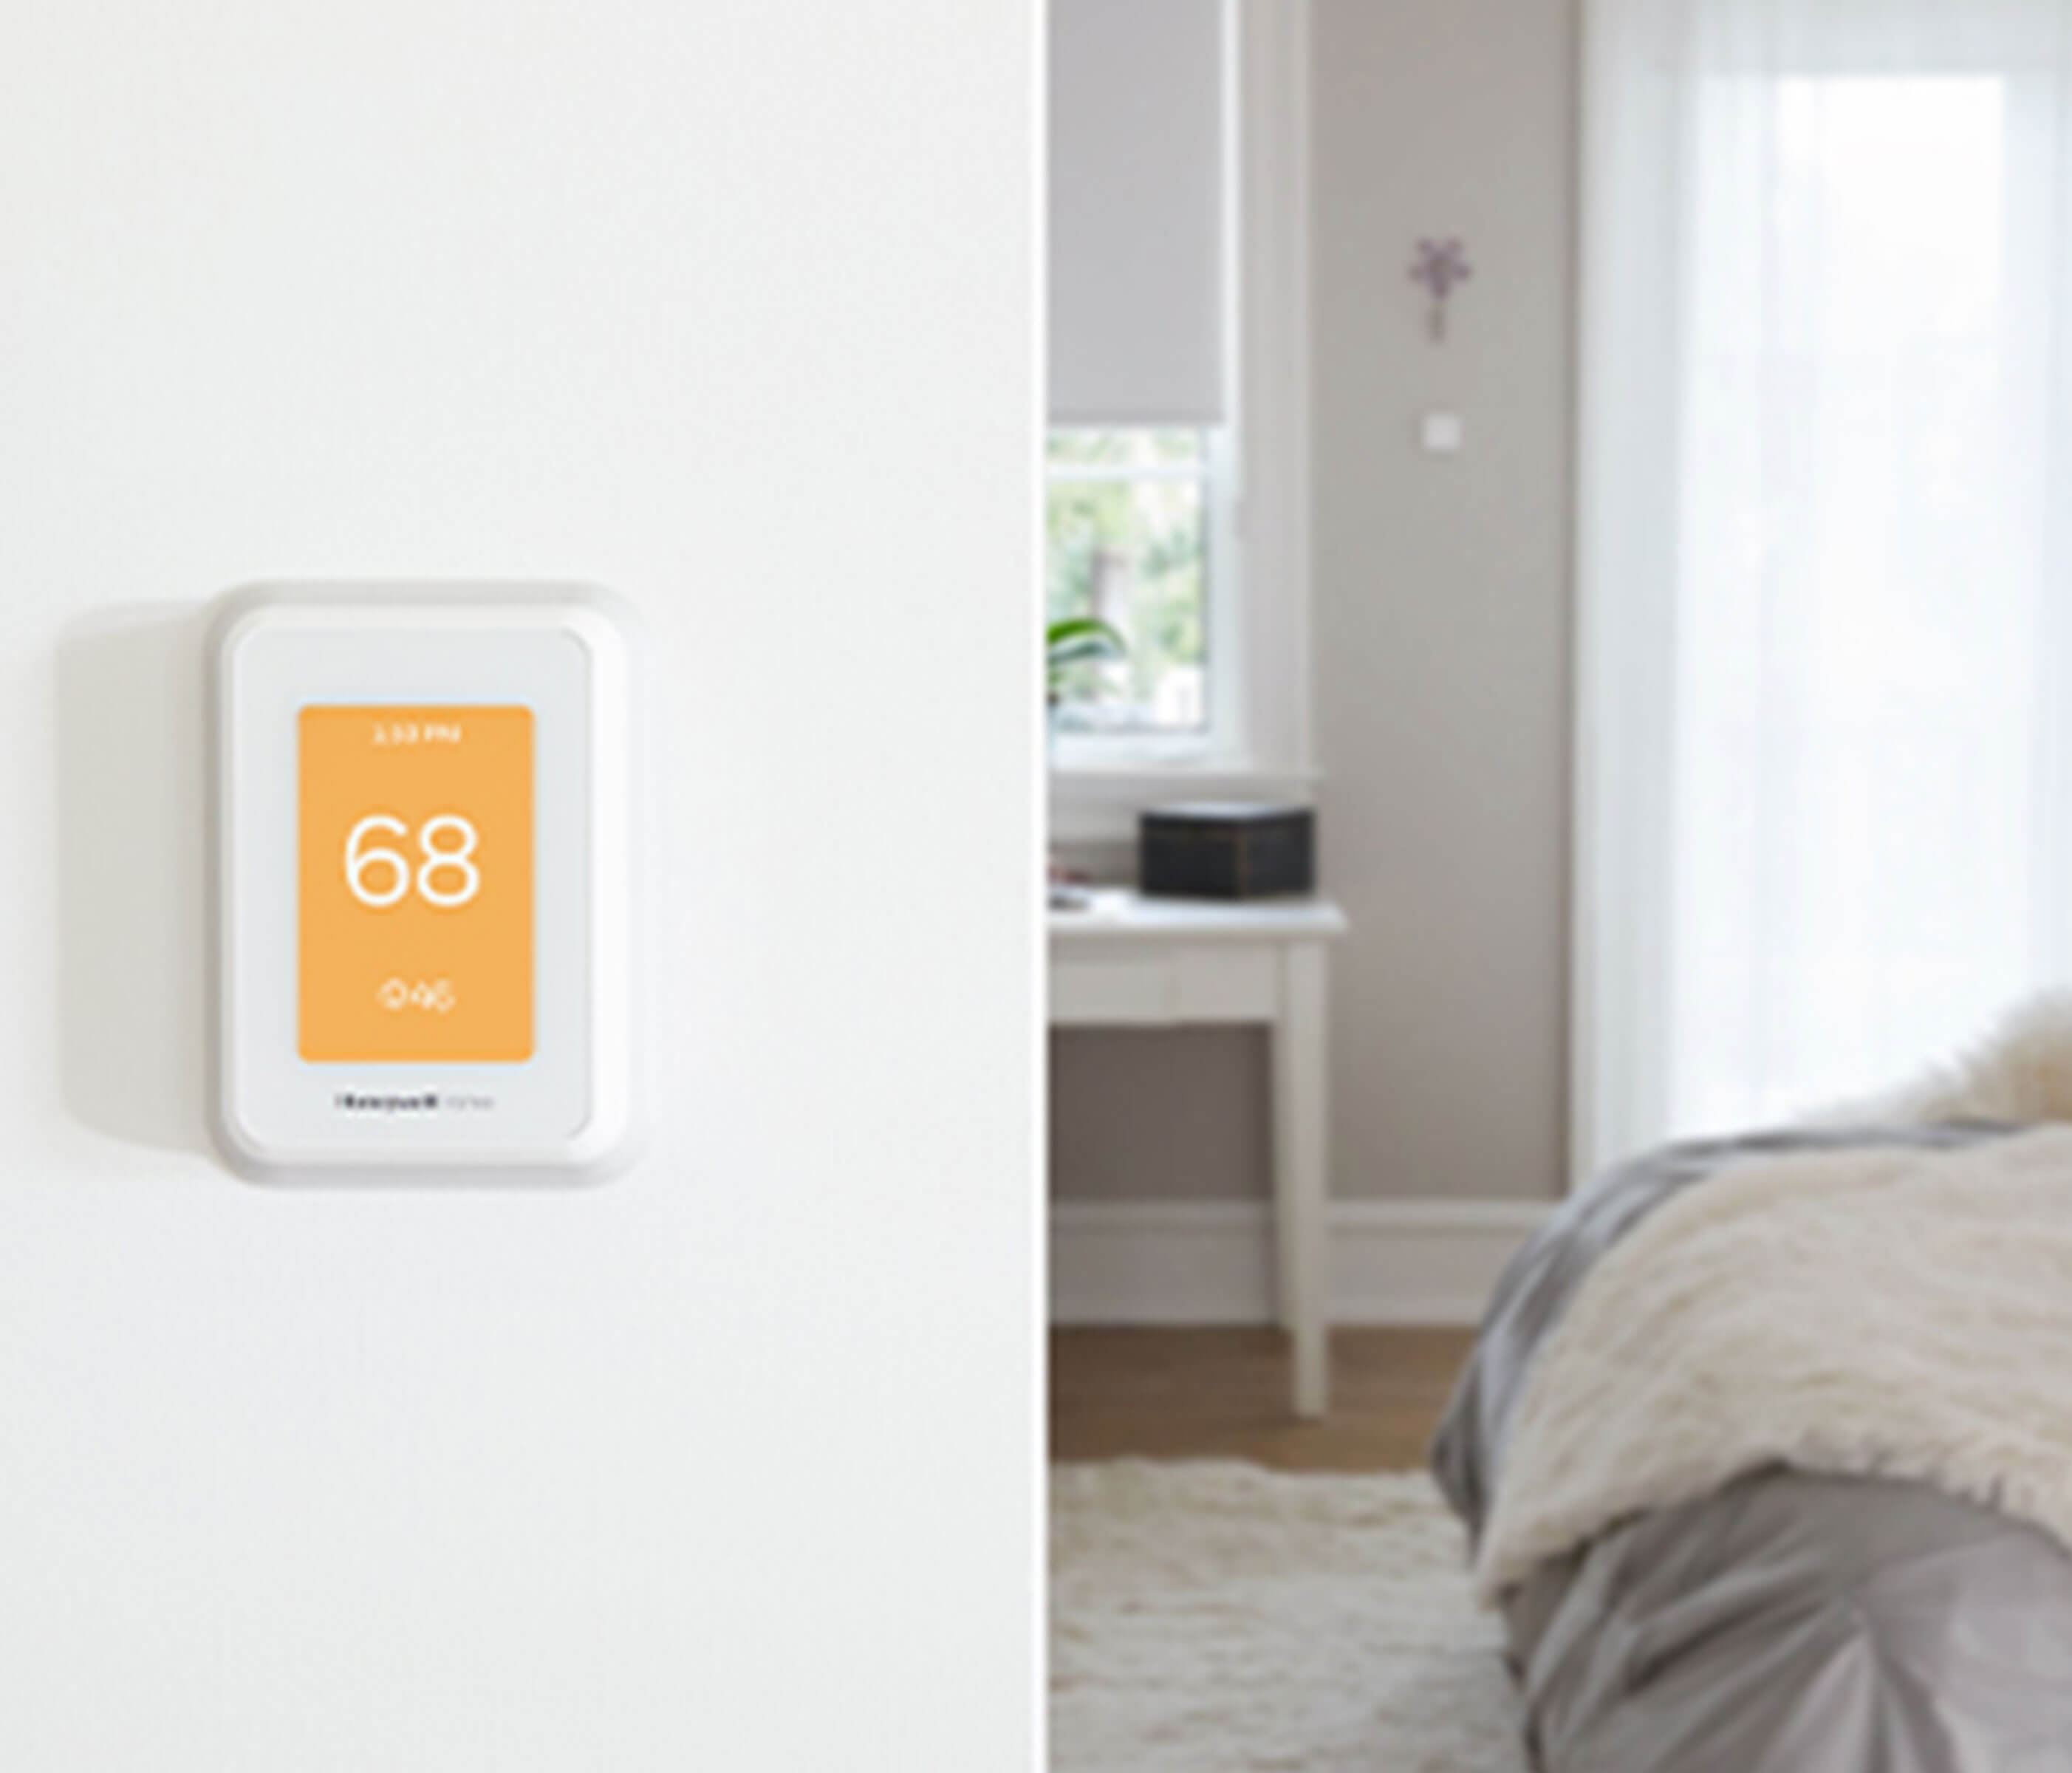 Smart thermostat that helps with energy savings